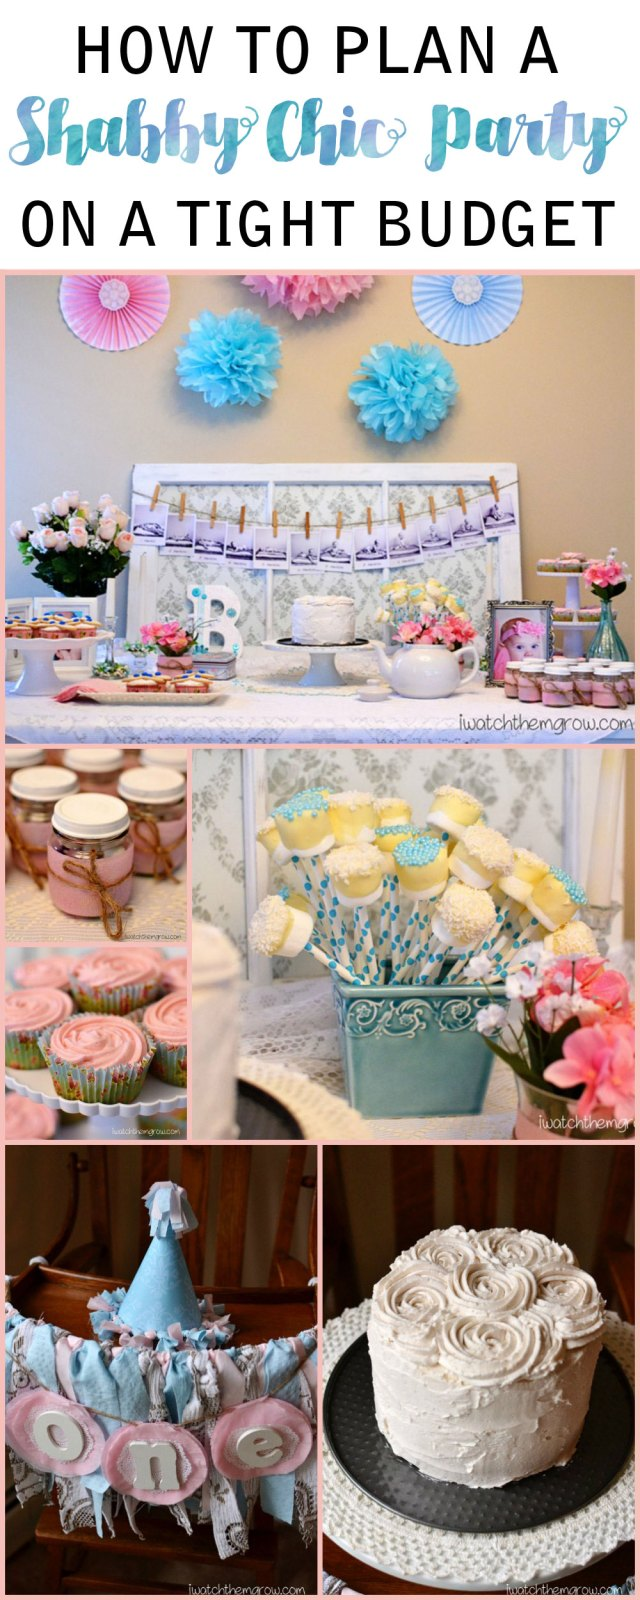 Great ideas and tips for a shabby chic party on a tight budget!